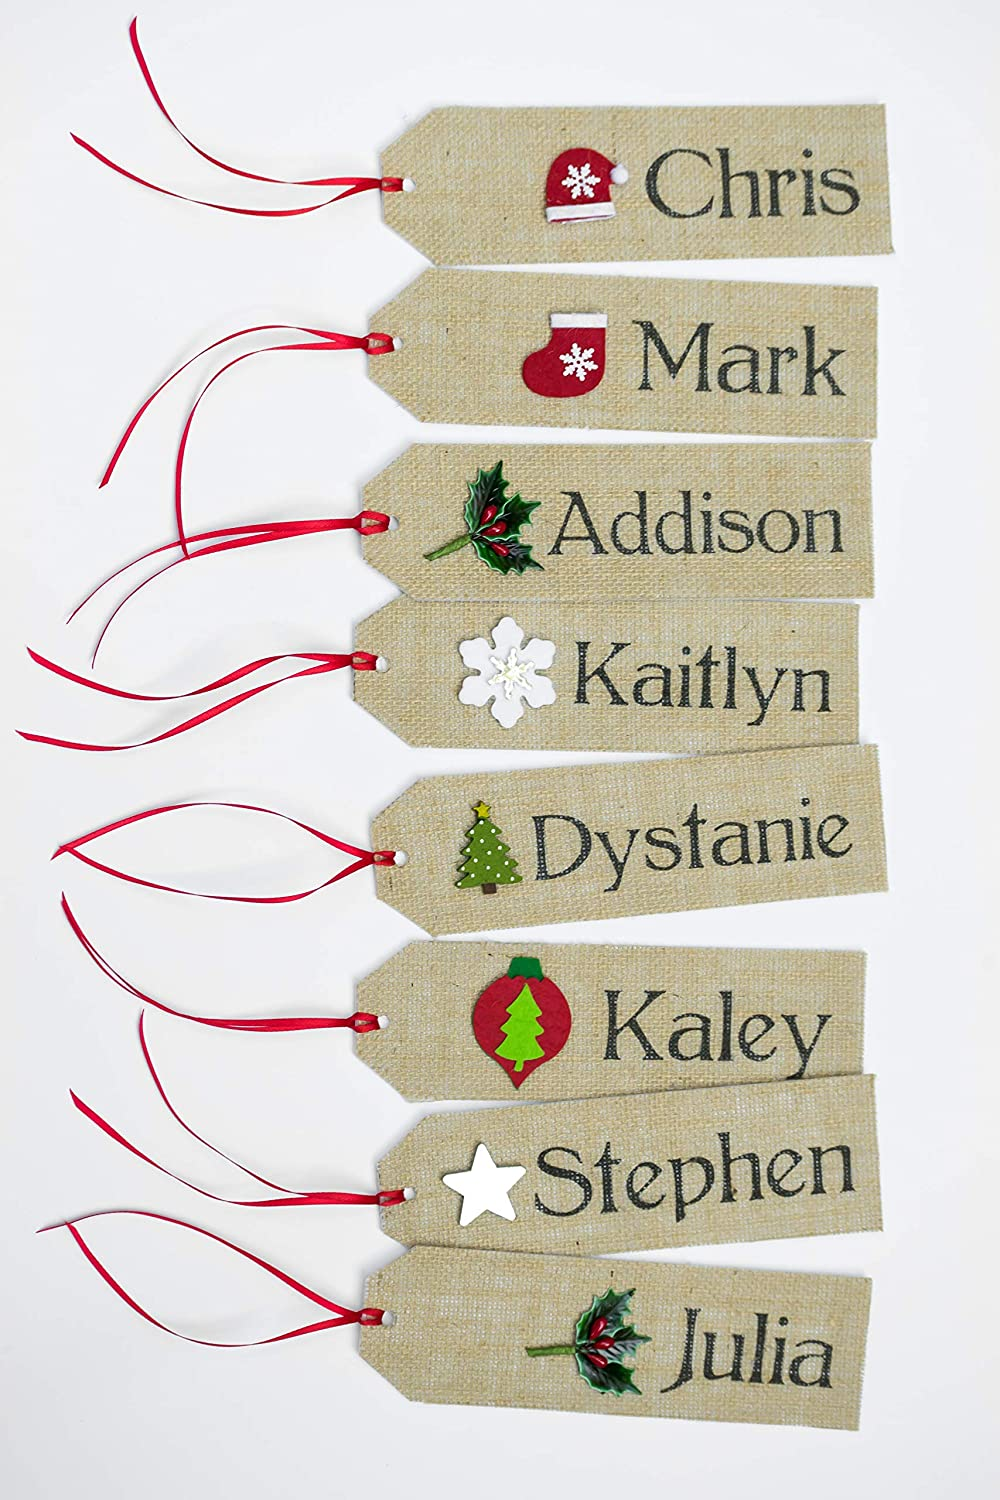 Personalized Stocking Name Tags Rustic Christmas Burlap Name Tags Stocking Custom Order Personalized Tags Names Hanging Christmas Gift Tag Snowflake